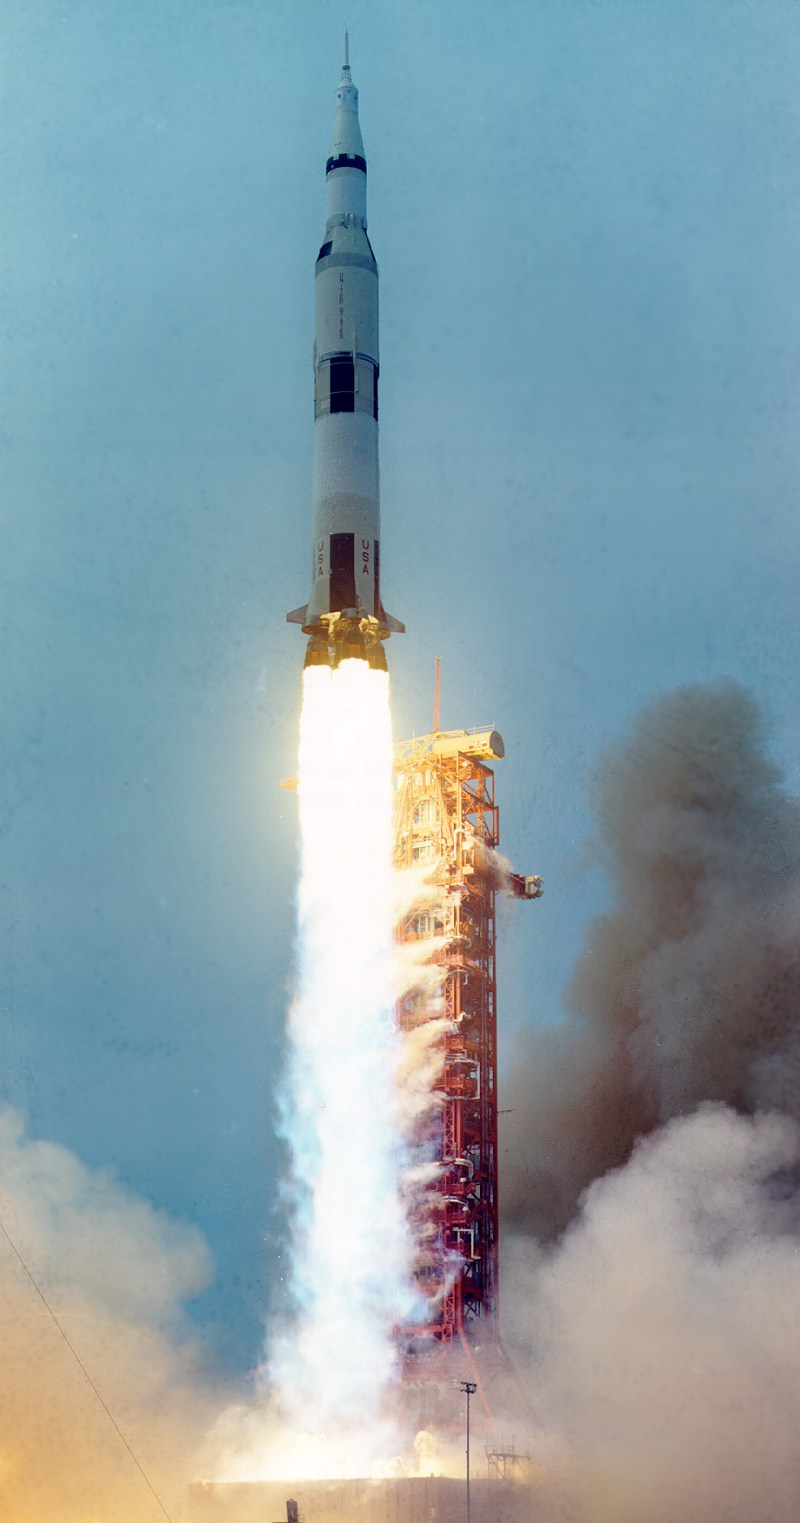 apollo 13 landing date - photo #40